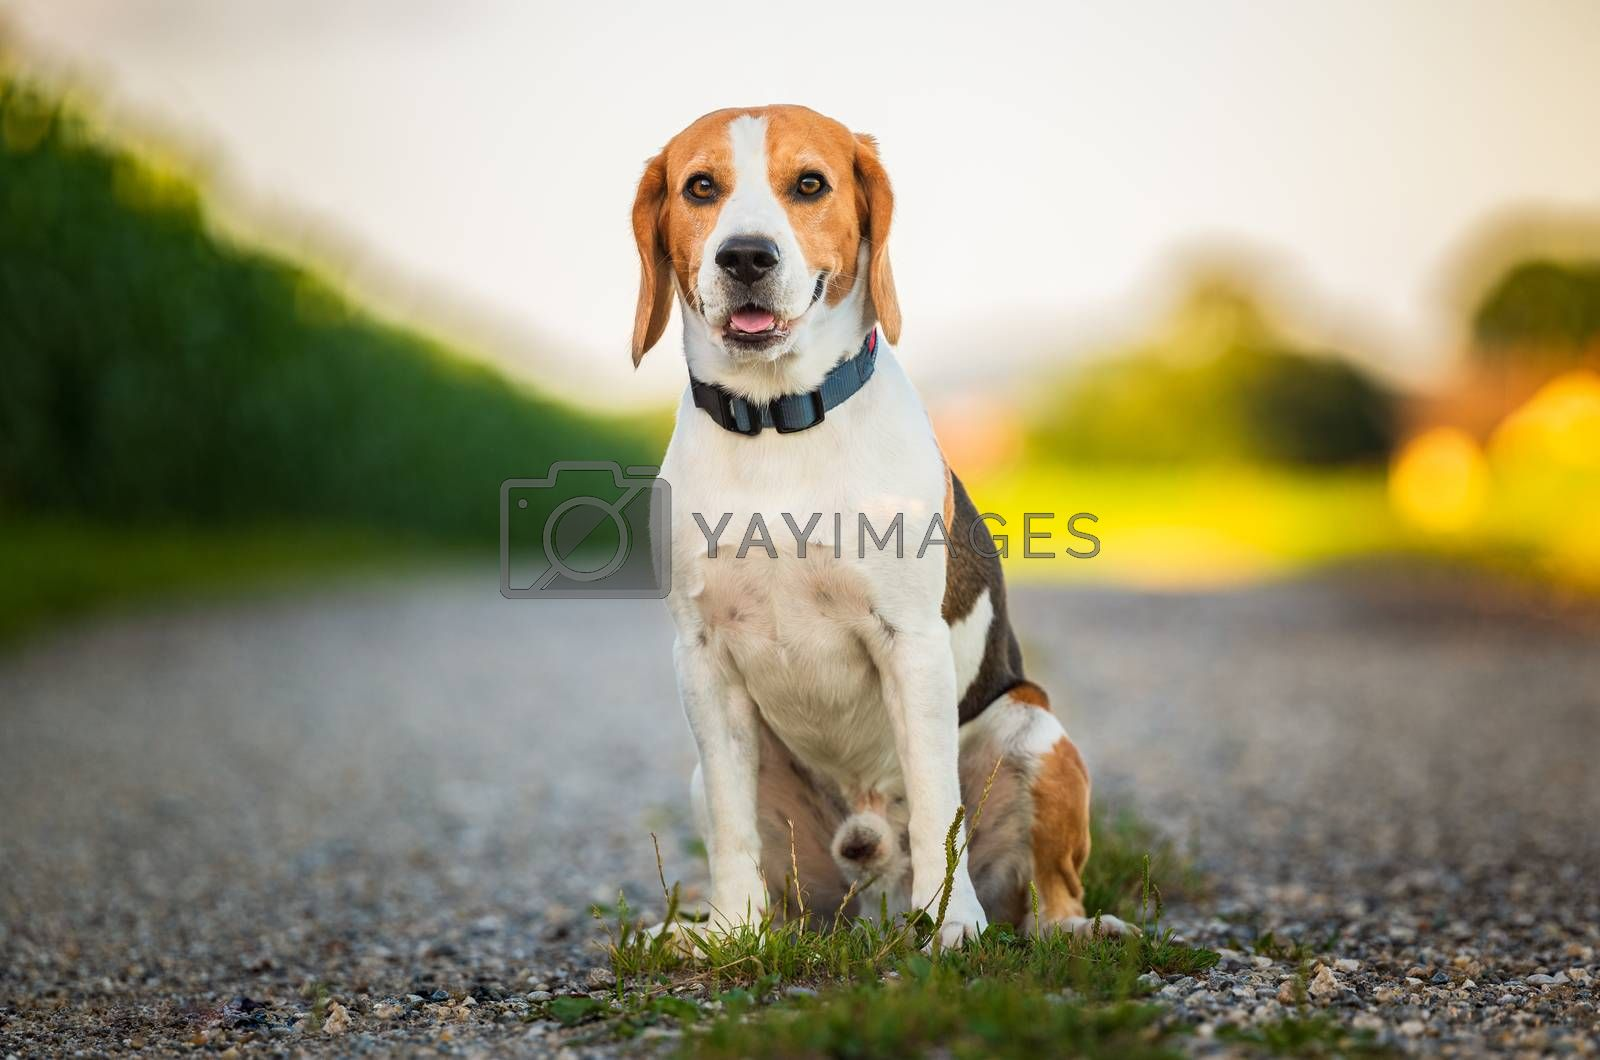 Portrait of a beagle dog in nature sitting on rural road, looking at camera. by Madphotos